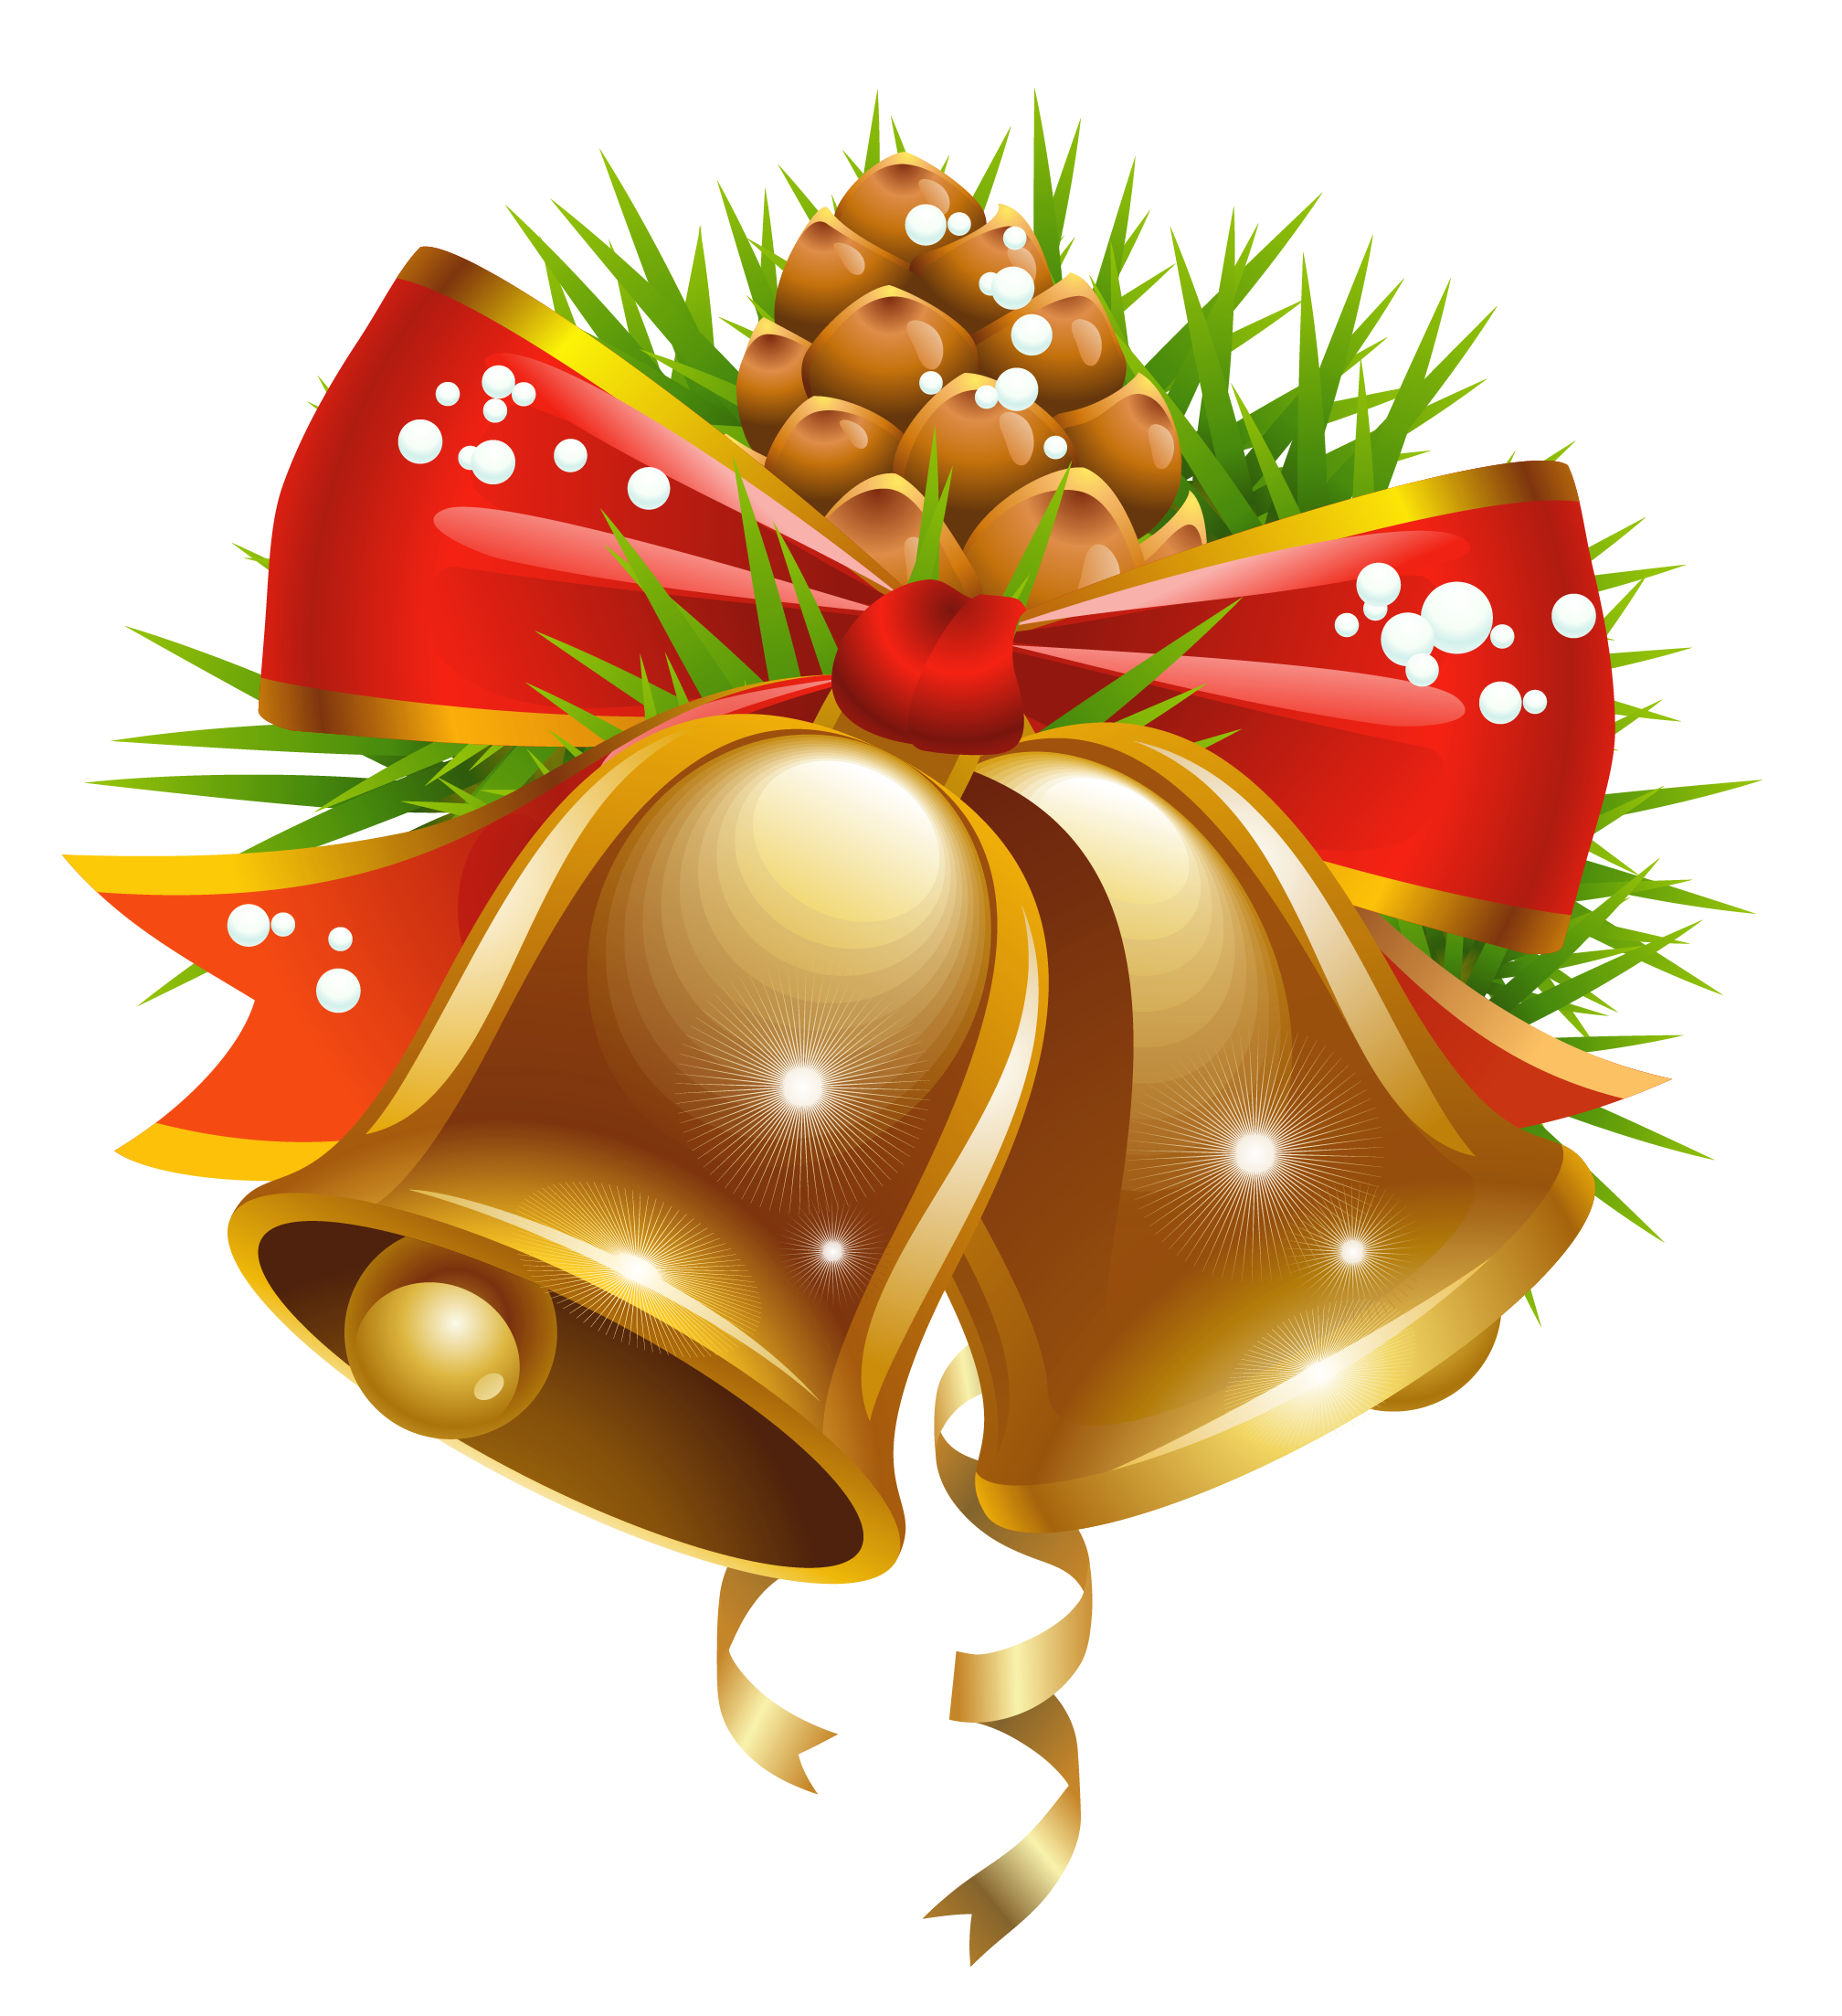 Bell christmas ornament - Bell Png Image Christmas Bellsvintage Christmaschristmas Ornamentsmerry